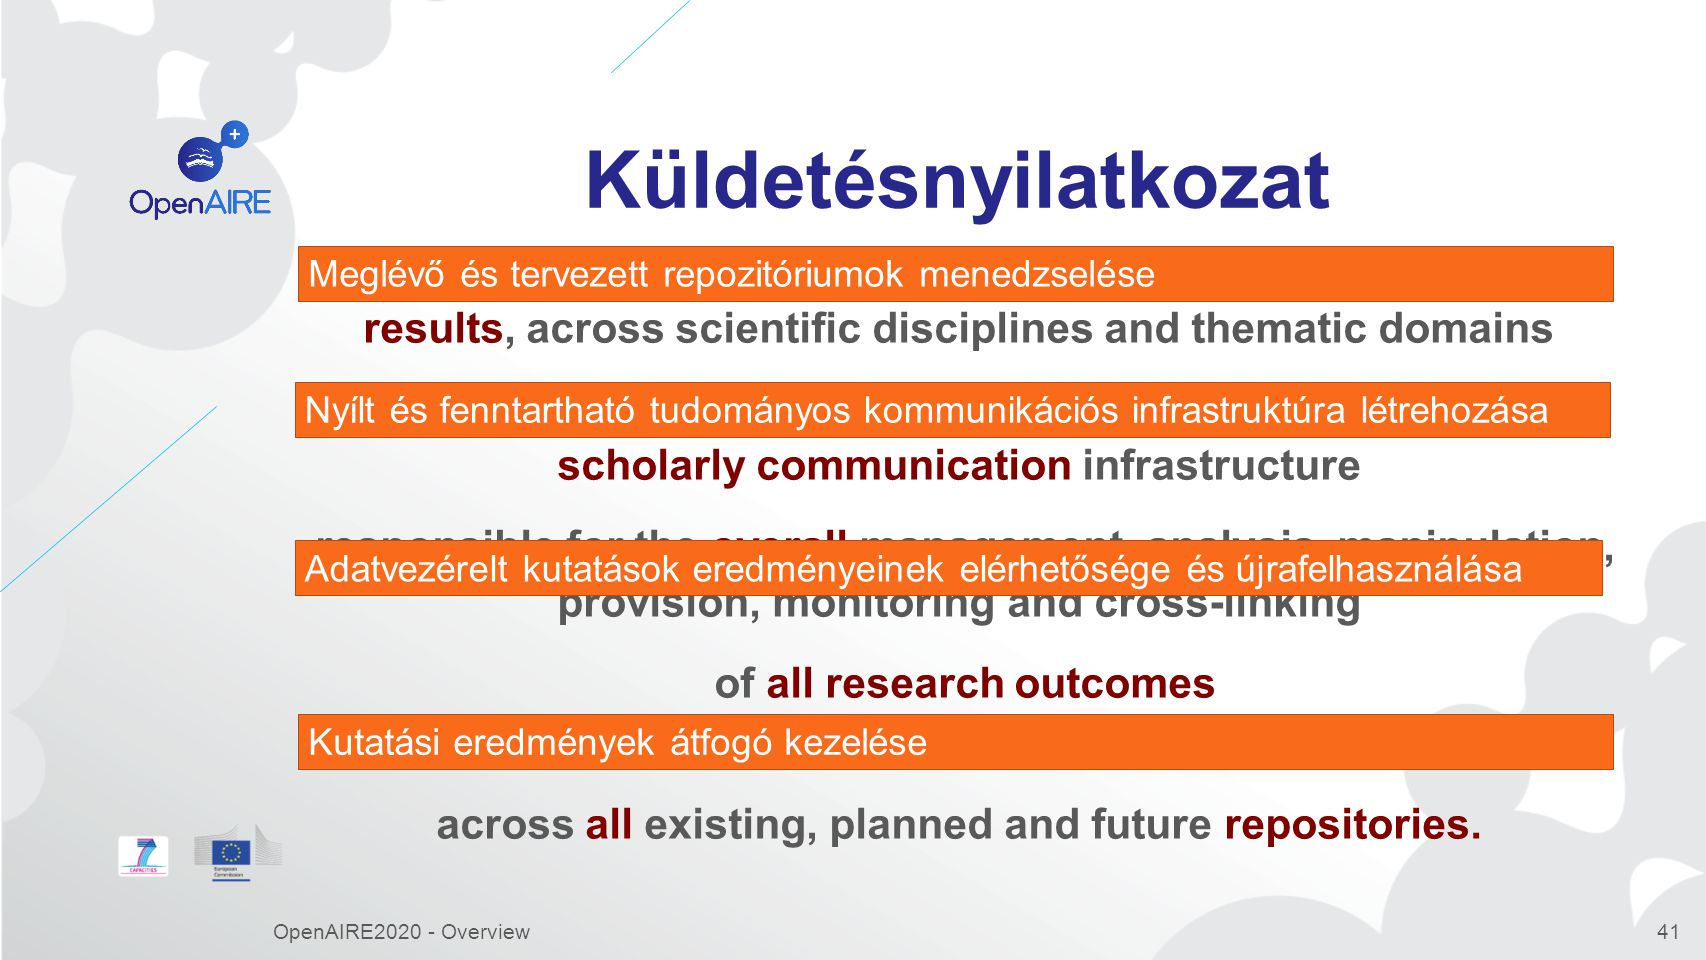 Küldetésnyilatkozat Promote the discoverability and reuse of data-driven research results, across scientific disciplines and thematic domains by estab